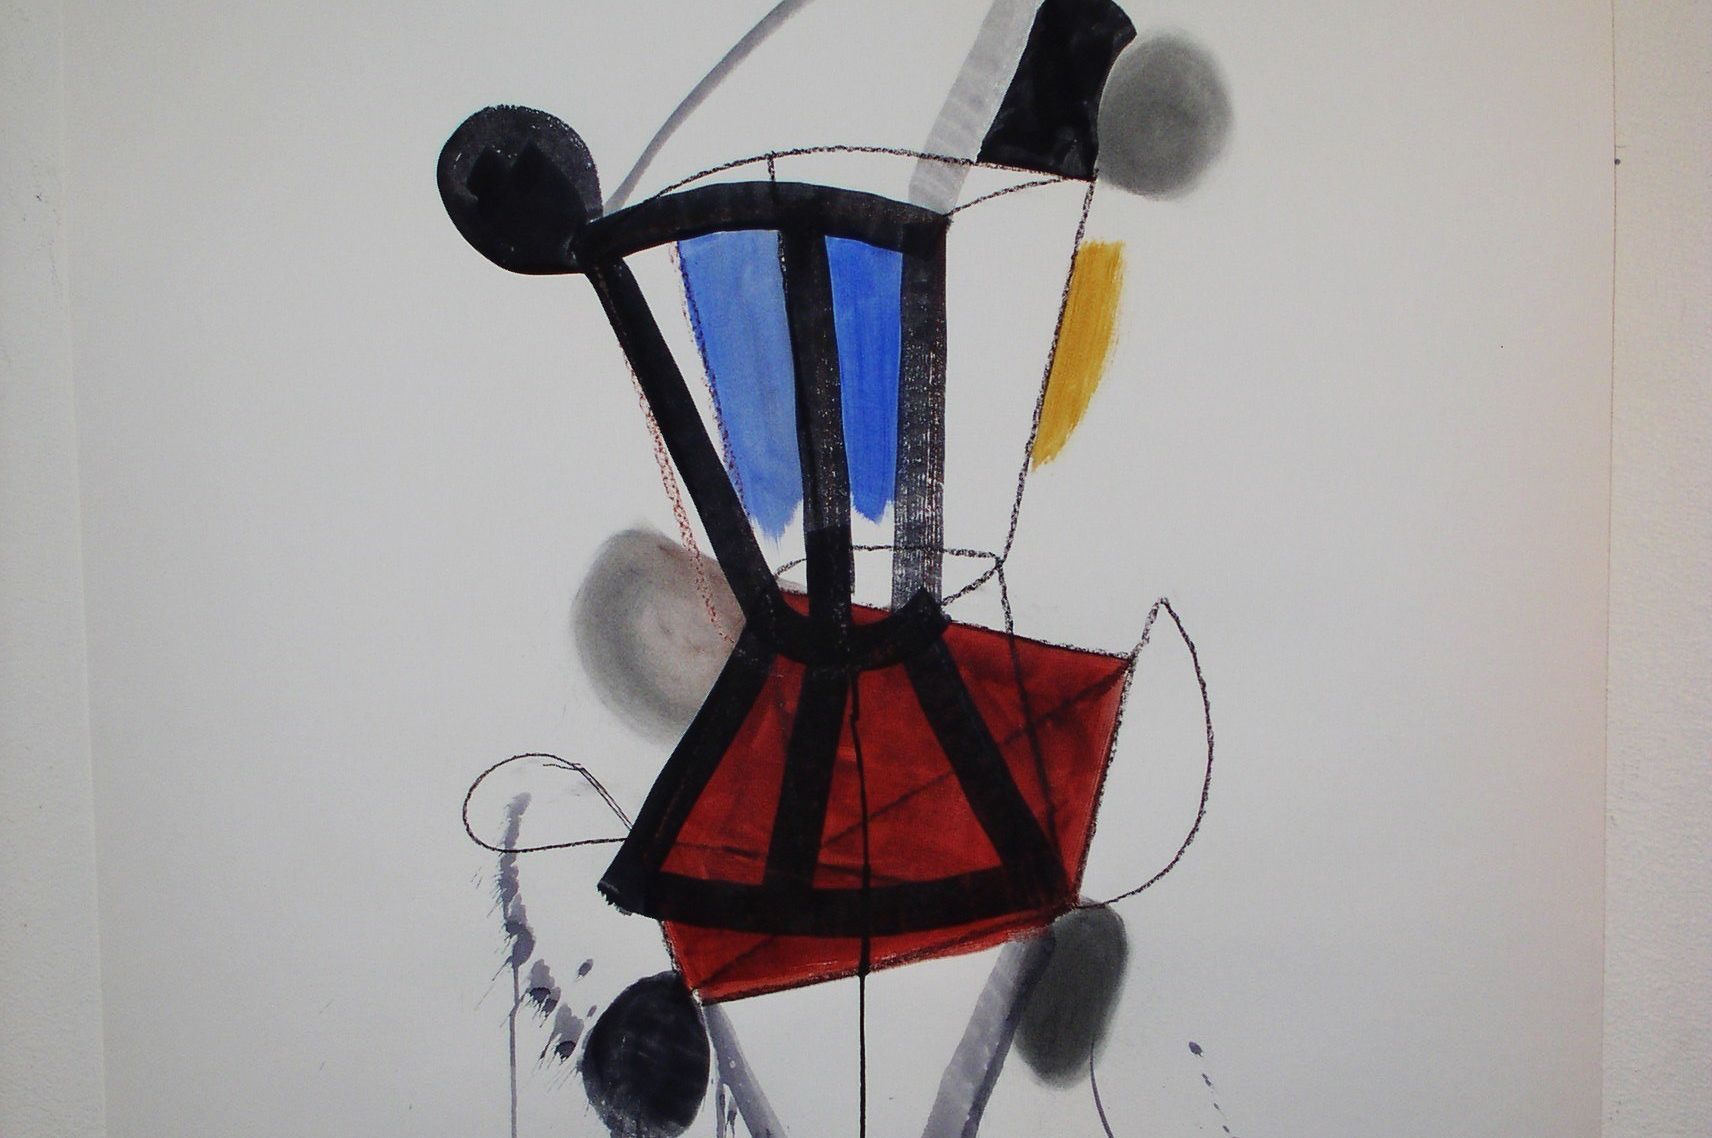 Soul catchers chair   2  2011 36x48 inch. mixed media on paper. q2e7xj